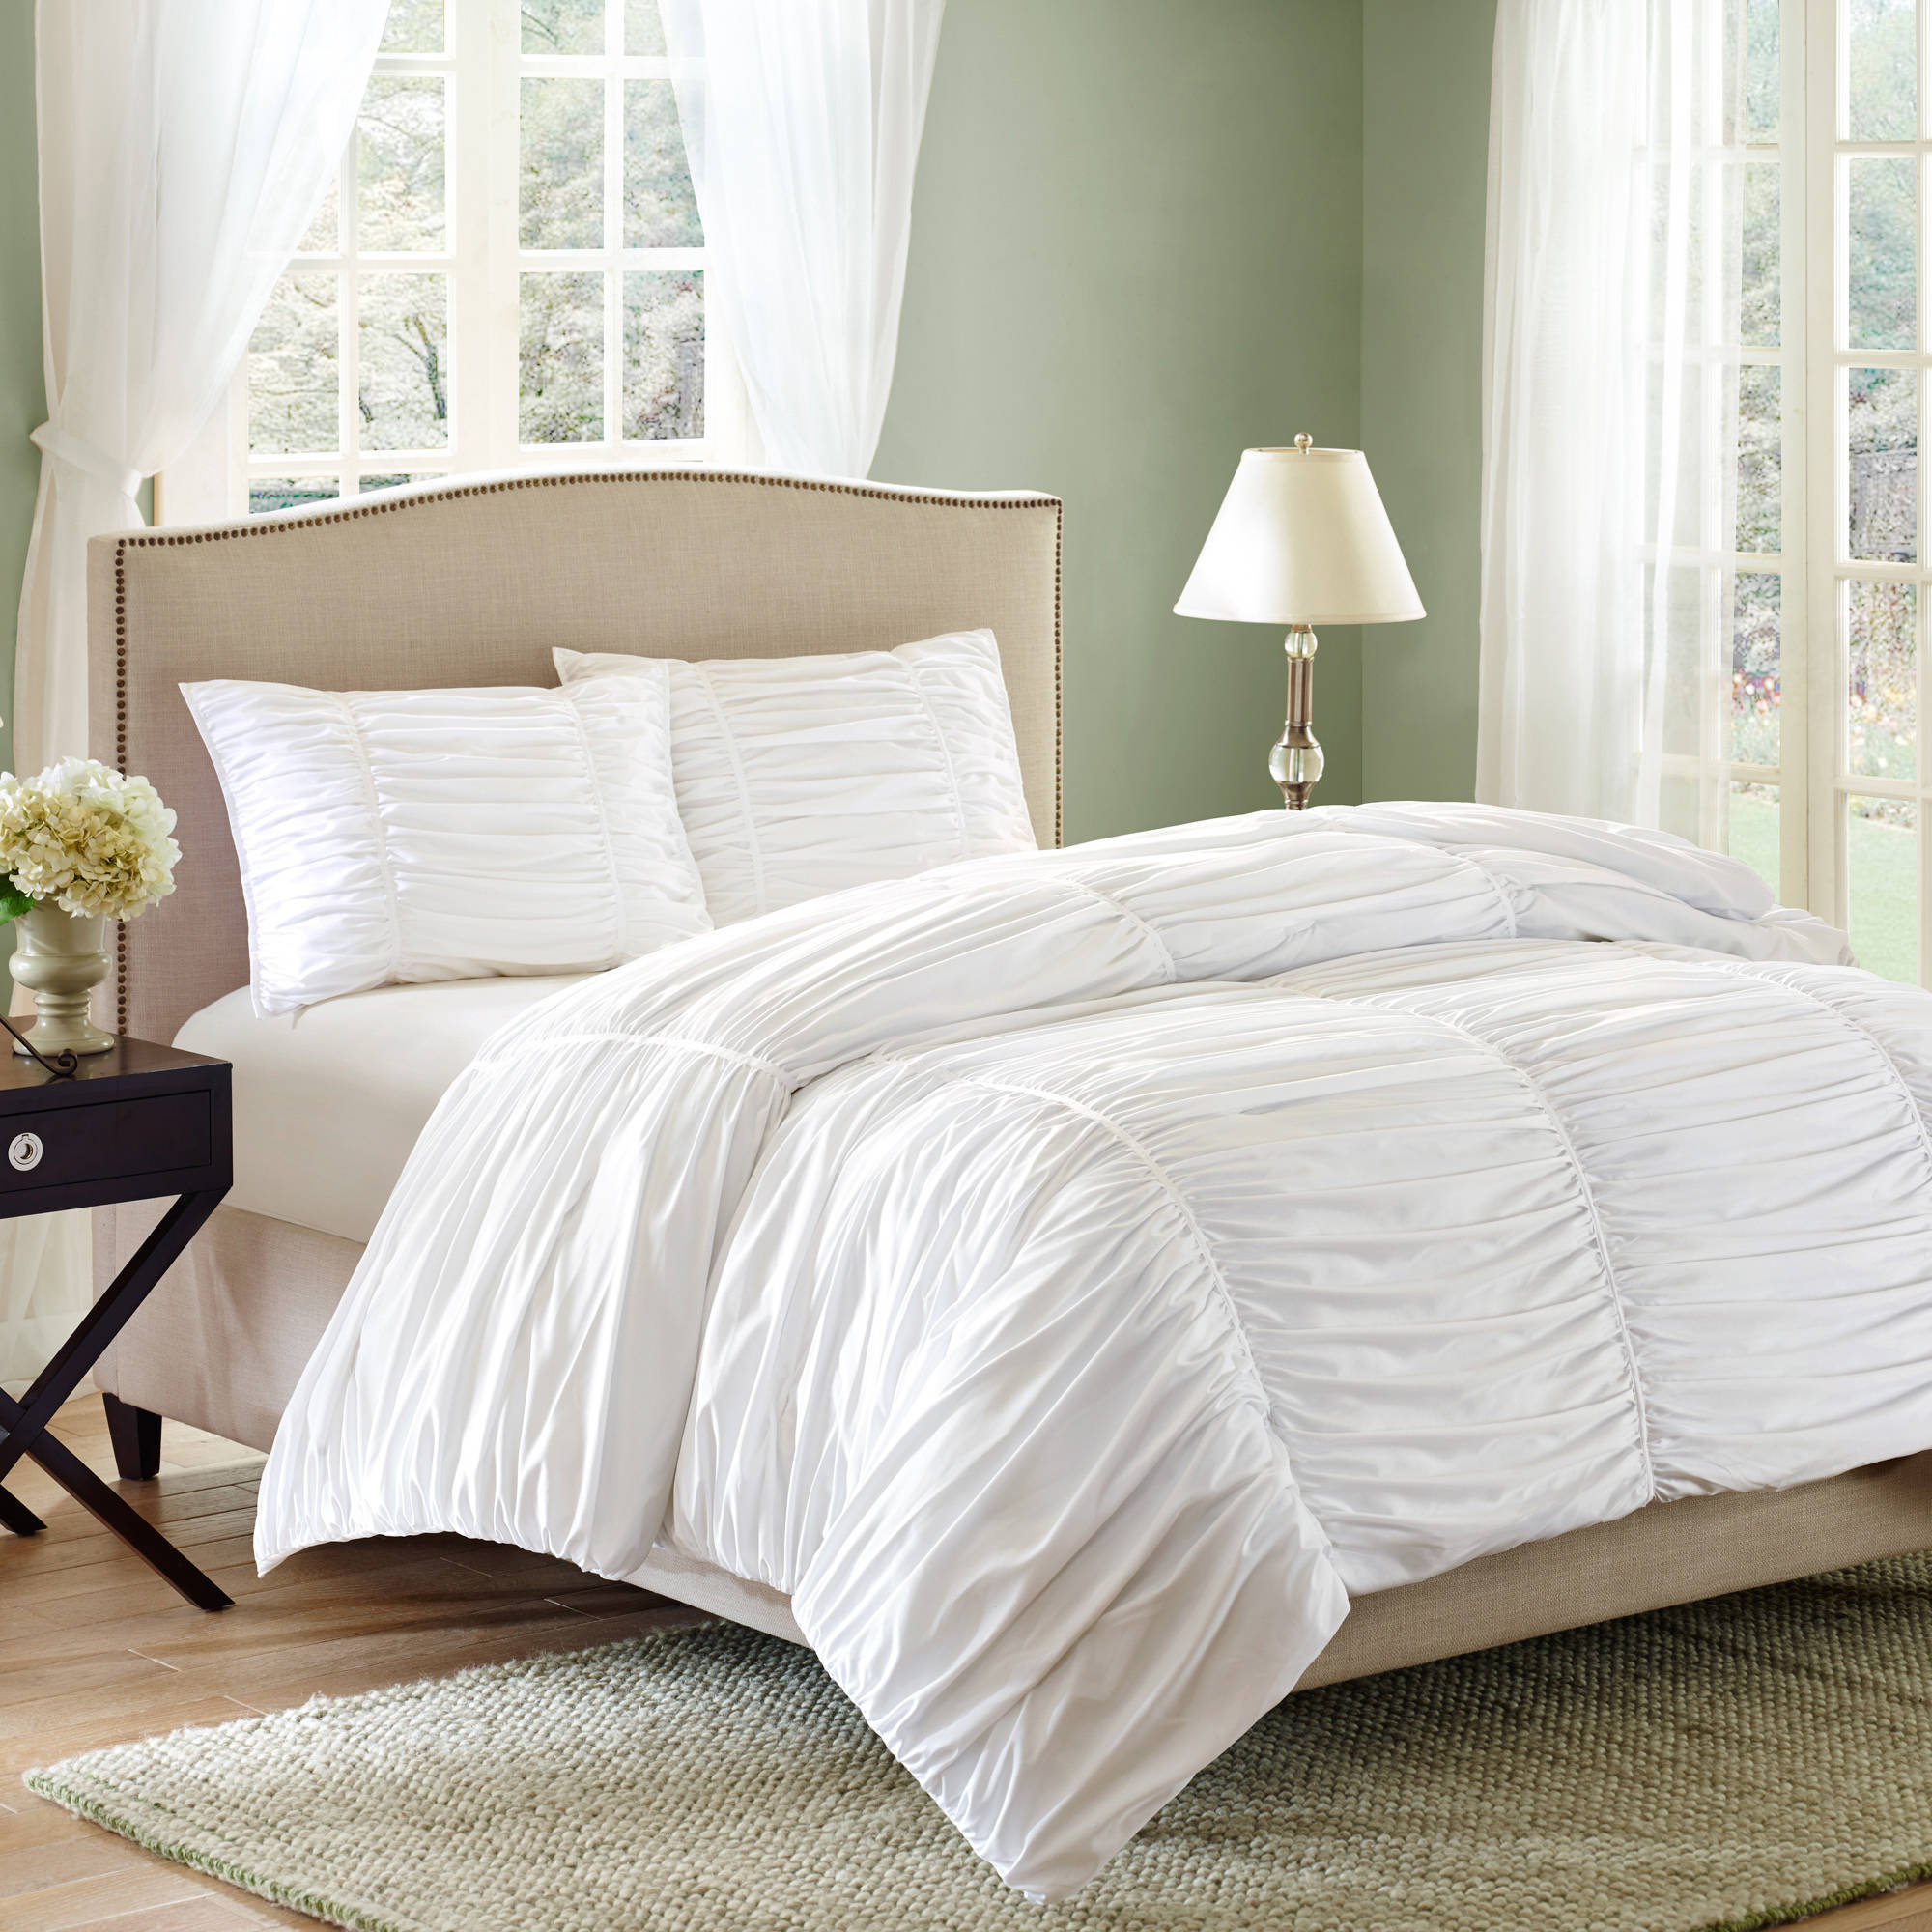 Better Homes And Gardens Ruching 3 Piece Comforter Set Pictures Gallery